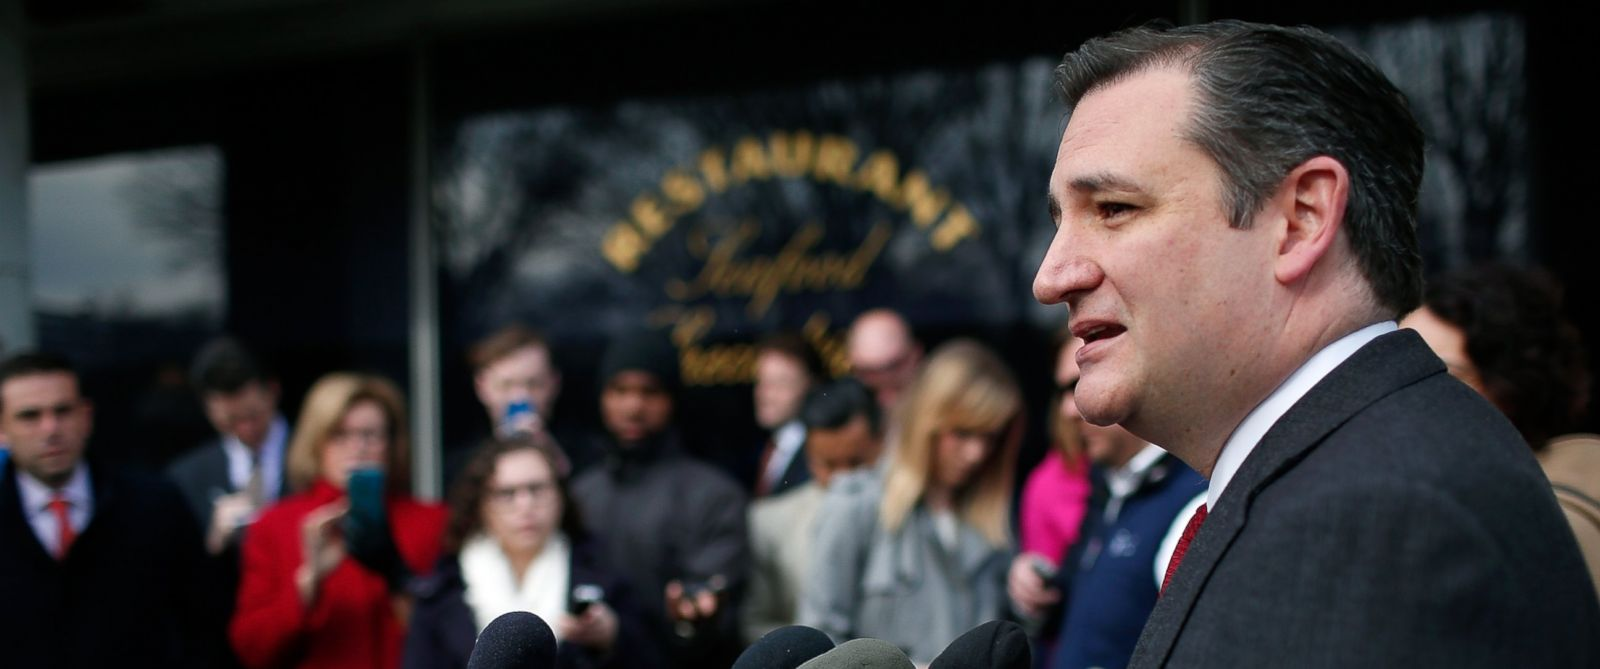 PHOTO: Republican presidential candidate Sen. Ted Cruz (R-TX) addresses the bombings in Brussels during remarks on March 22, 2016 in Washington.